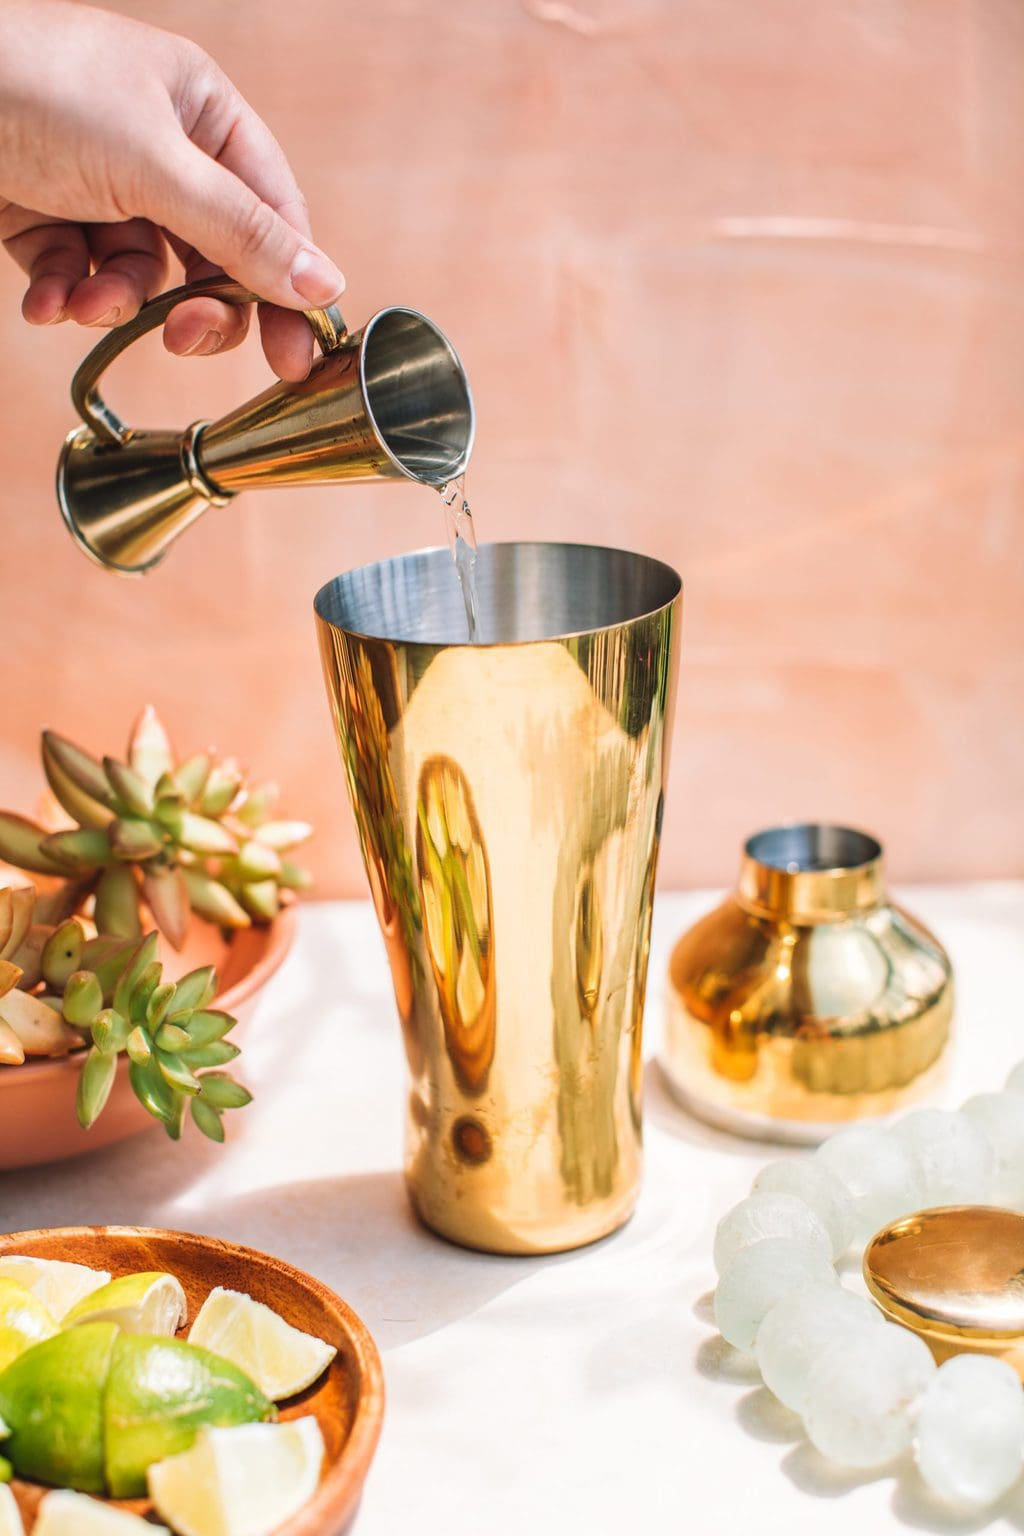 hand pouring liquor into gold cocktail shaker from one ounce pourer